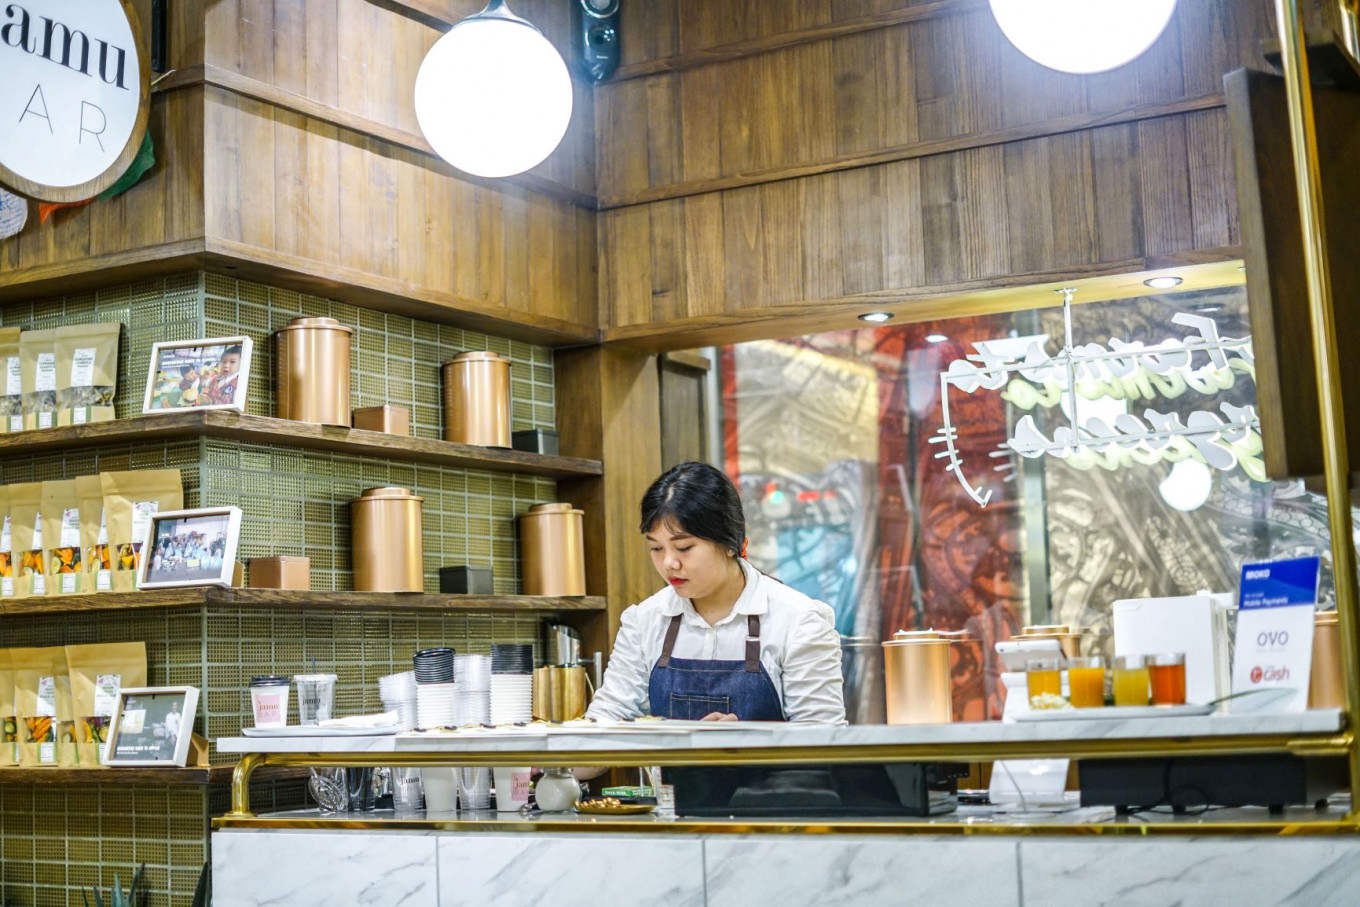 From ice cream to latte: Traditional 'jamu' takes on modern twist